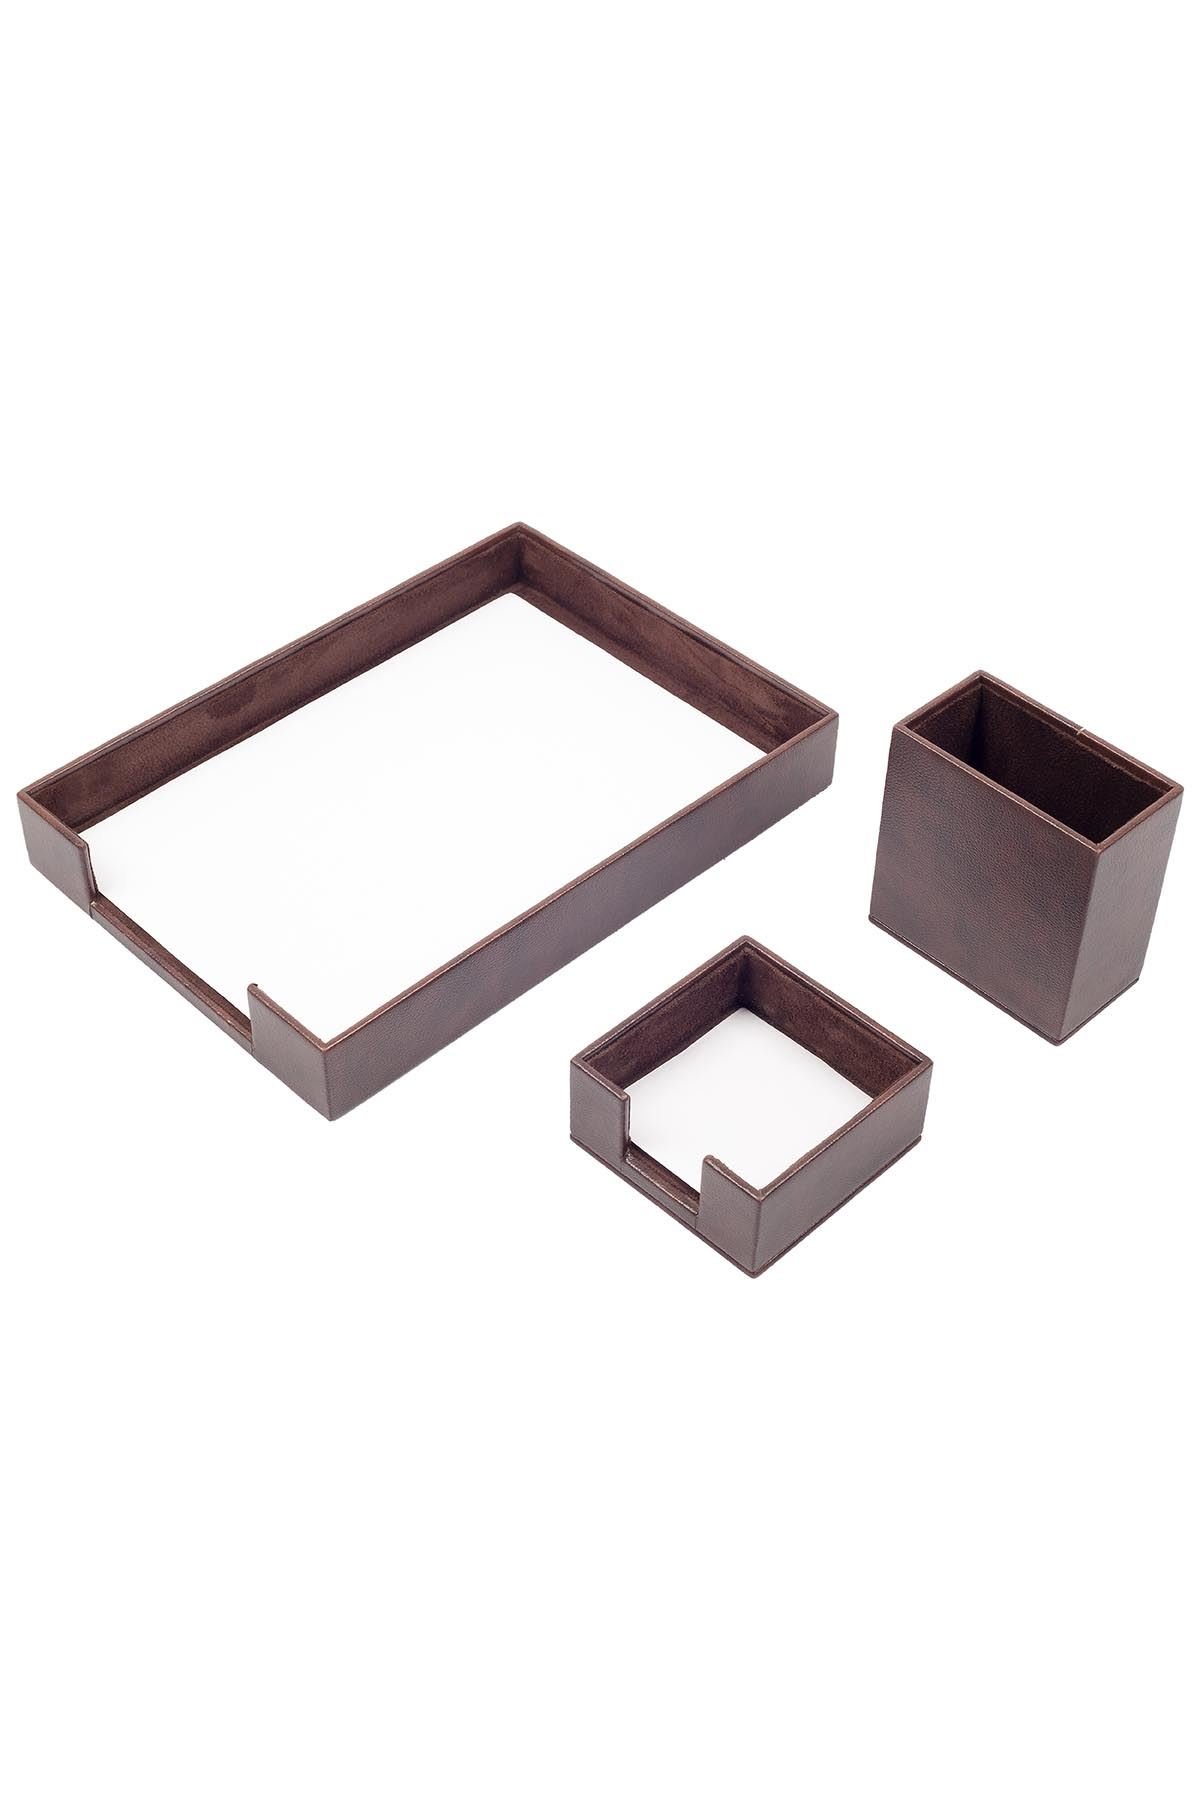 Document Tray With 2 Accessories Brown| Desk Set Accessories | Desktop Accessories | Desk Accessories | Desk Organizers